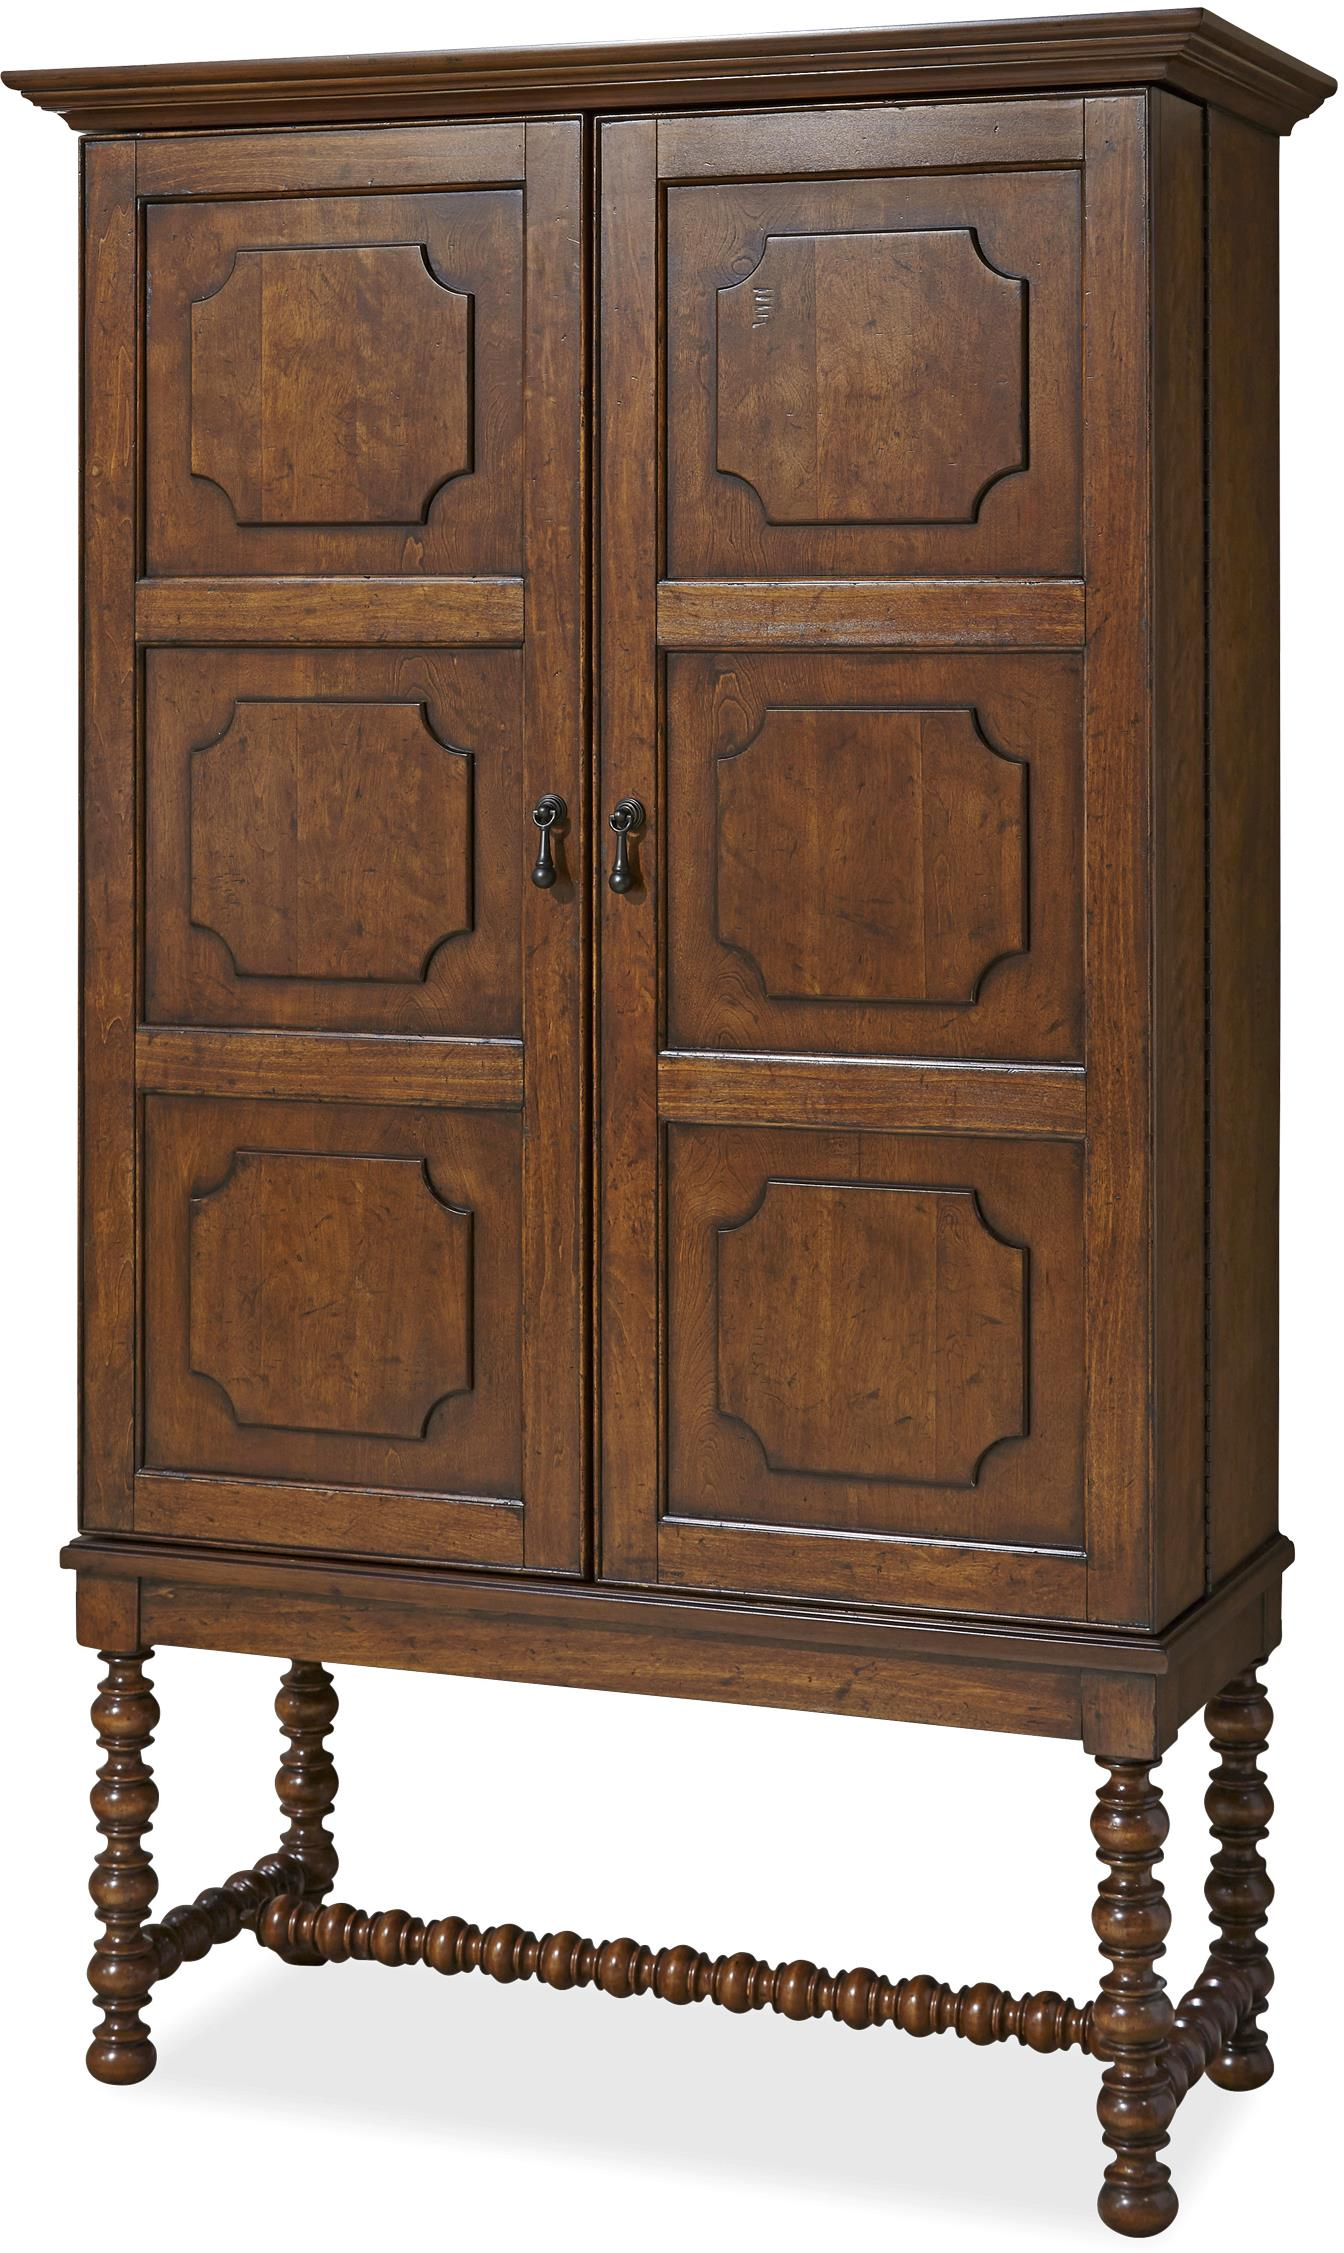 "Paula Deen by Universal Dogwood ""A Guy Walks Into A Bar"" Cabinet - Item Number: 596685"